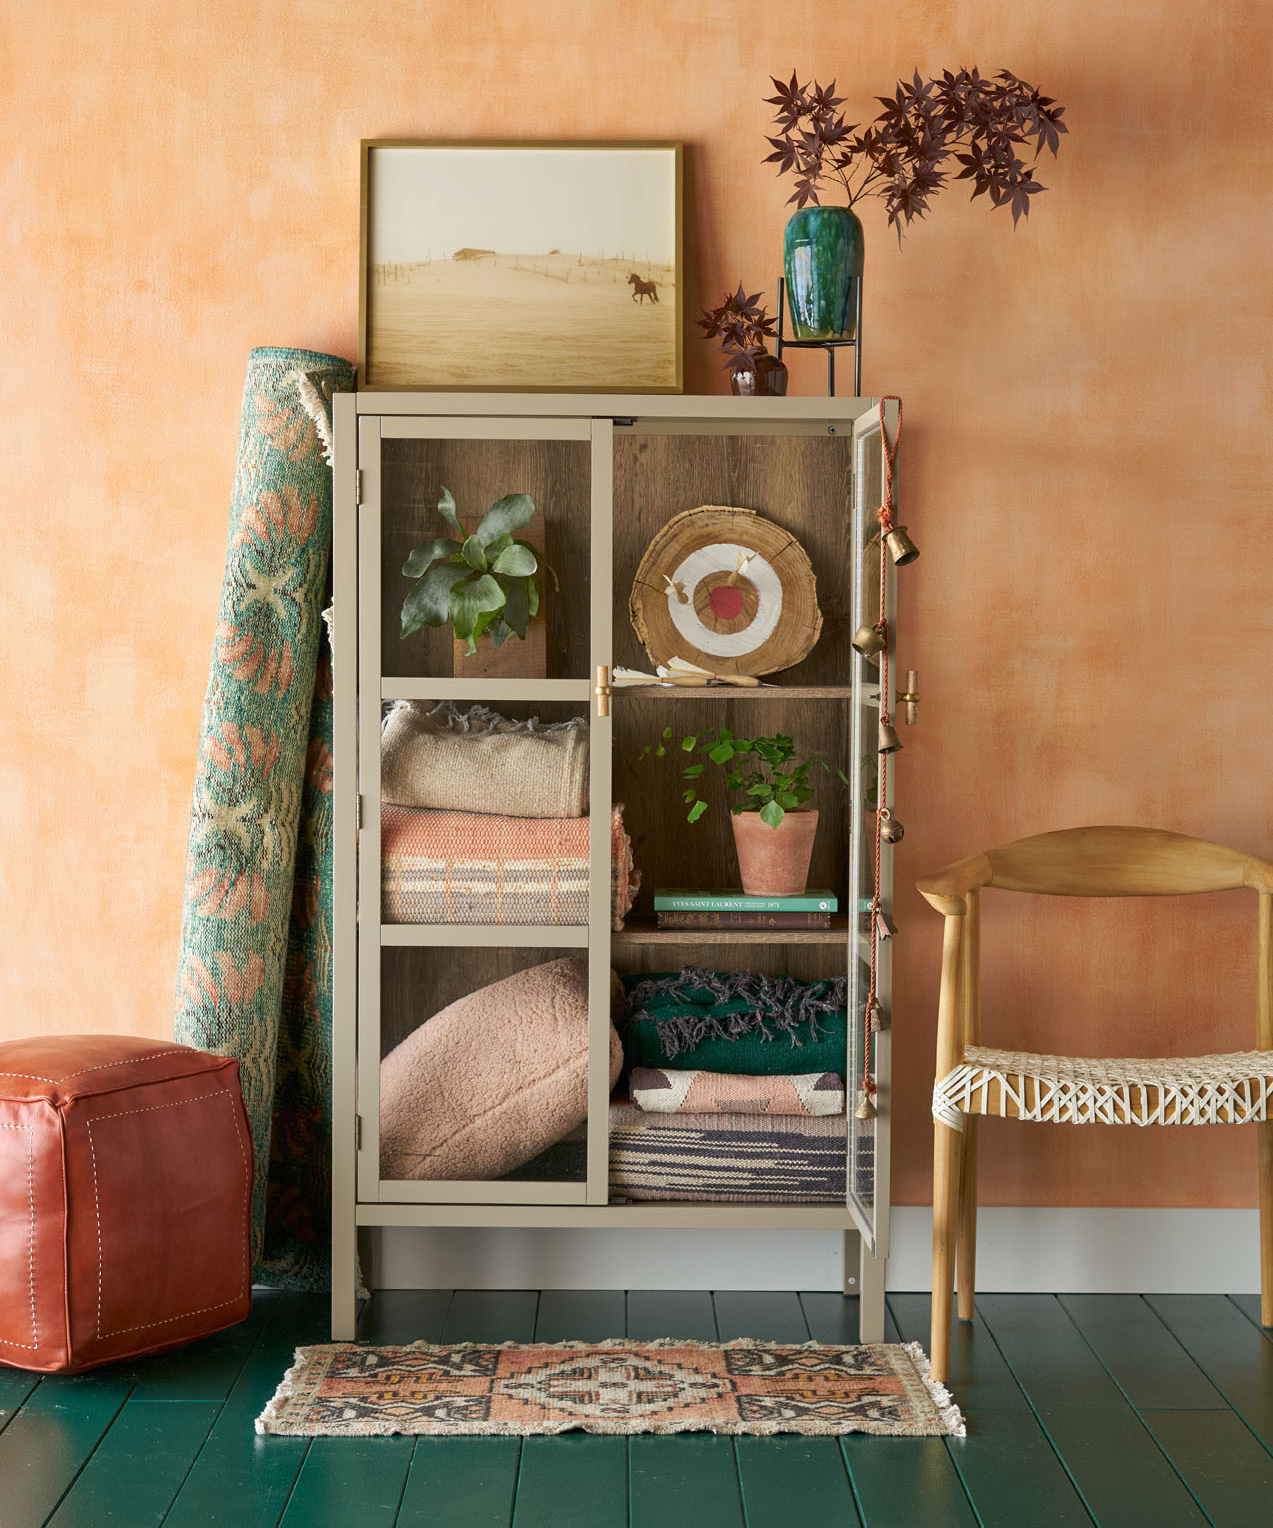 How to Dress Your Home for Fall with Cozy Decor | Midwest Living